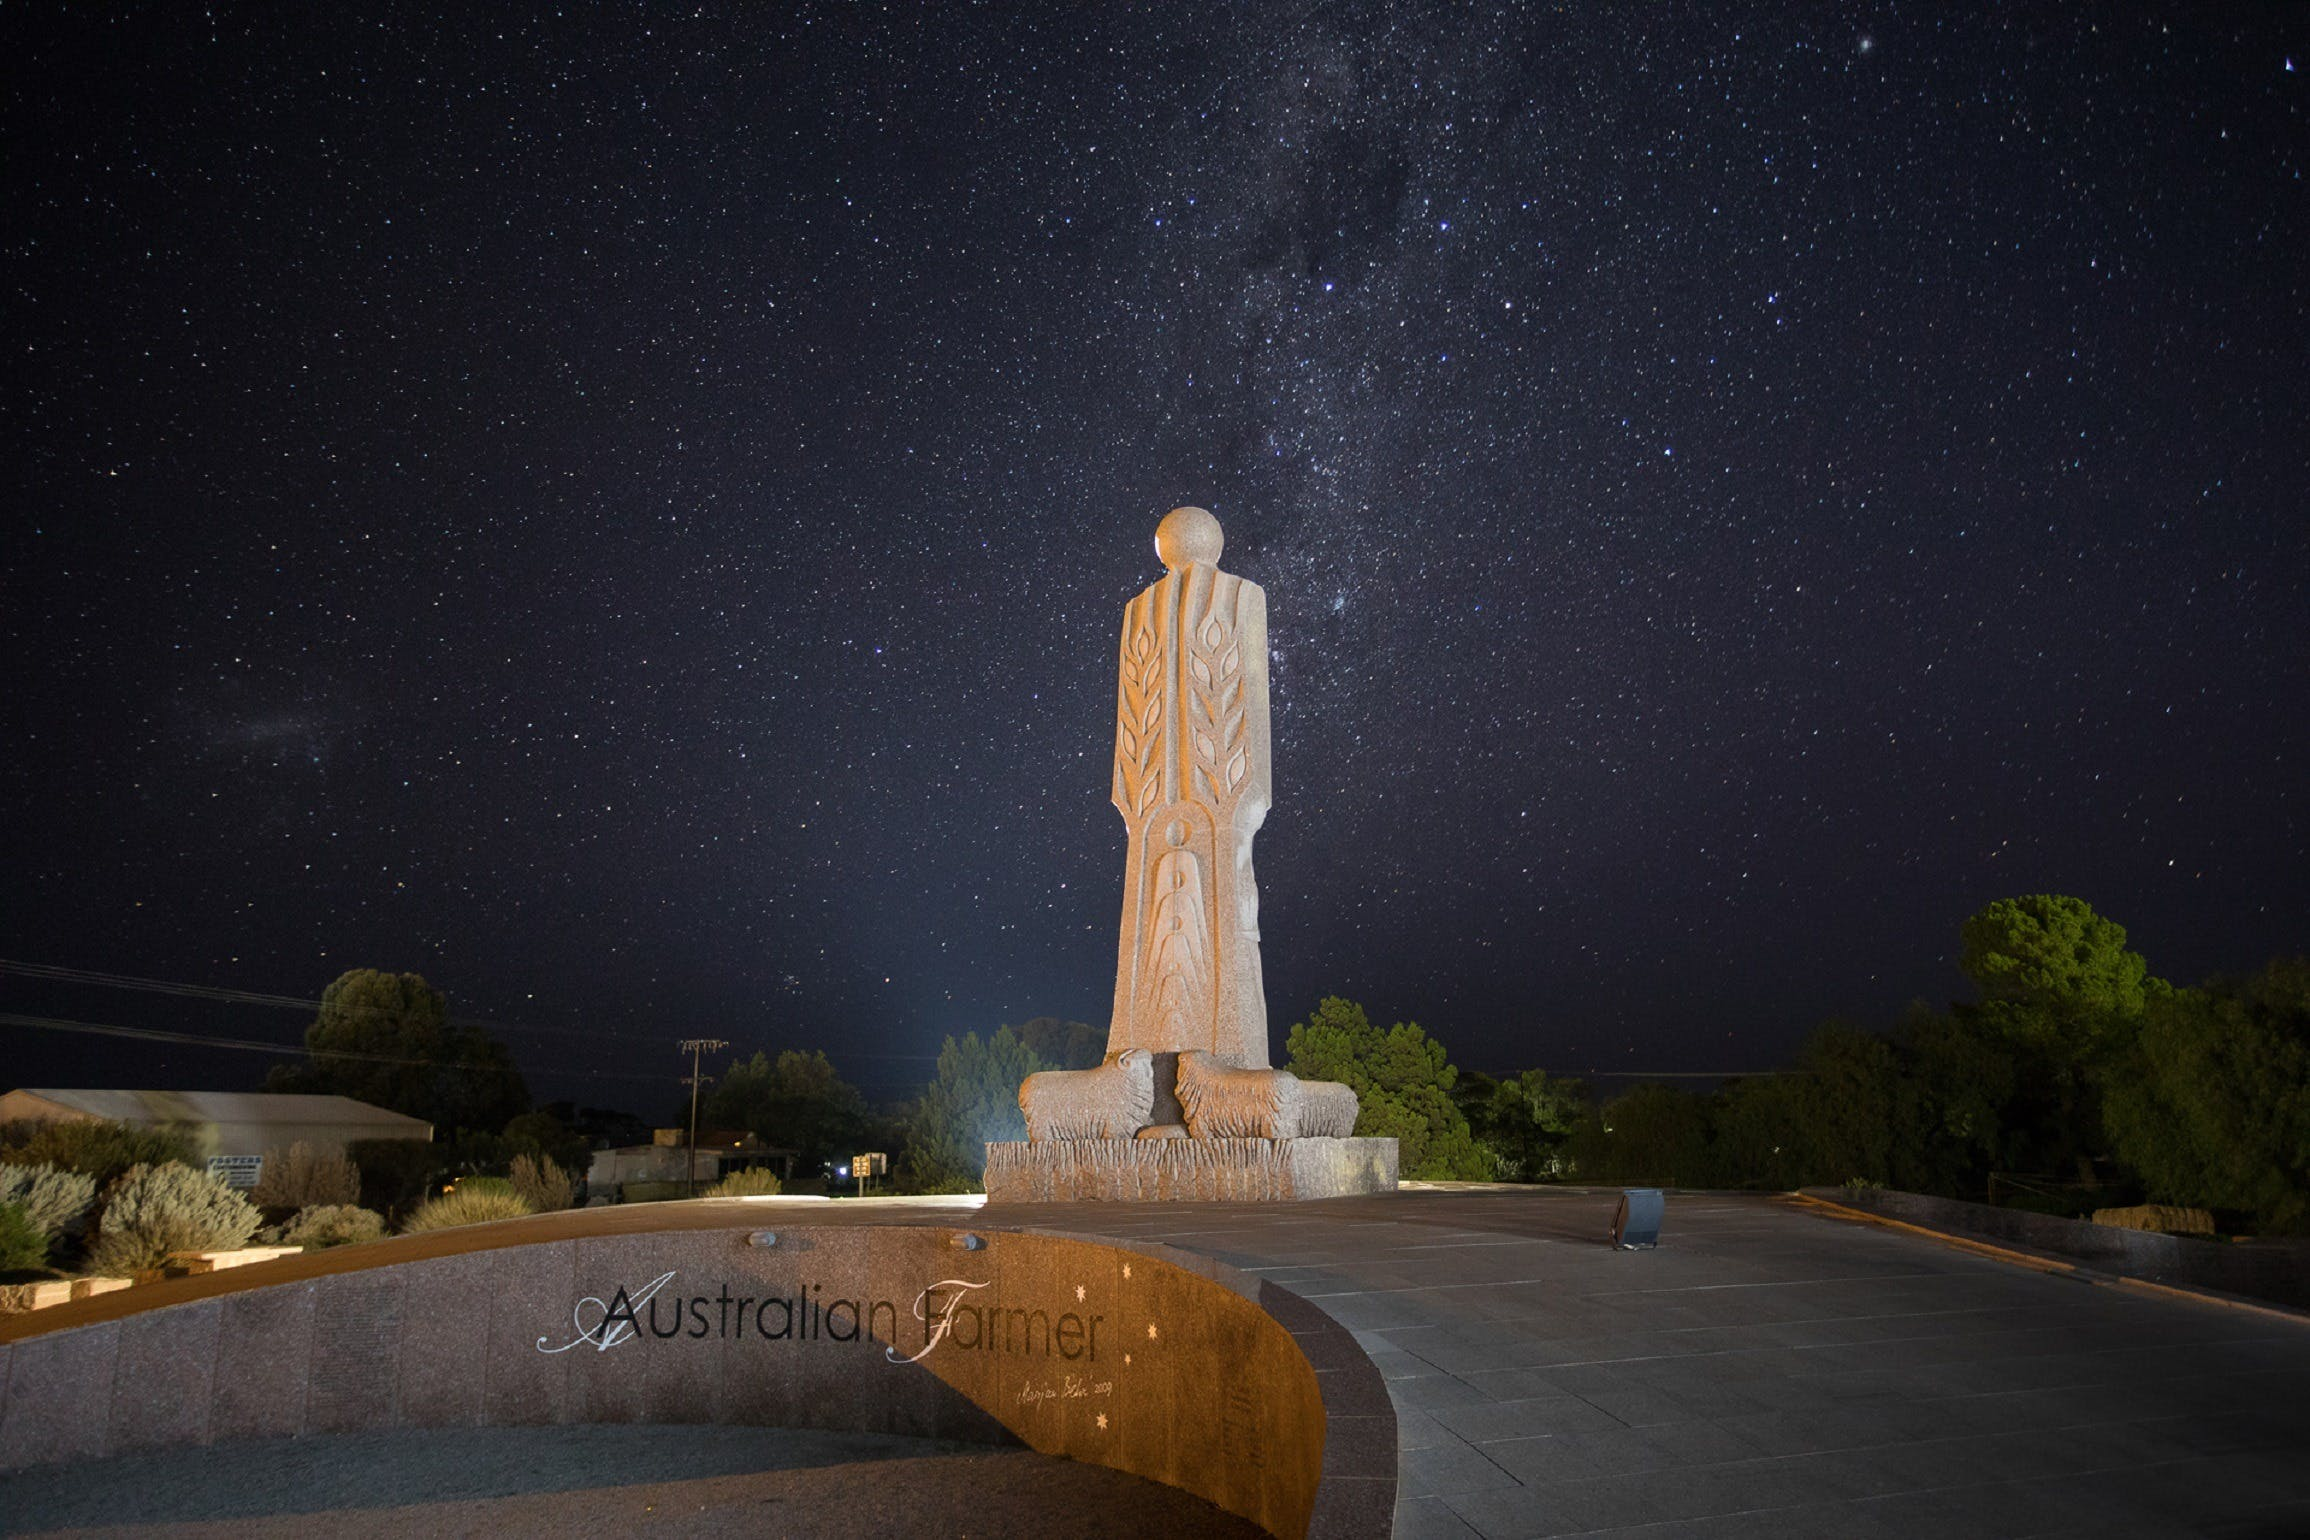 The Australian Farmer Granite Sculpture - Tourism Cairns